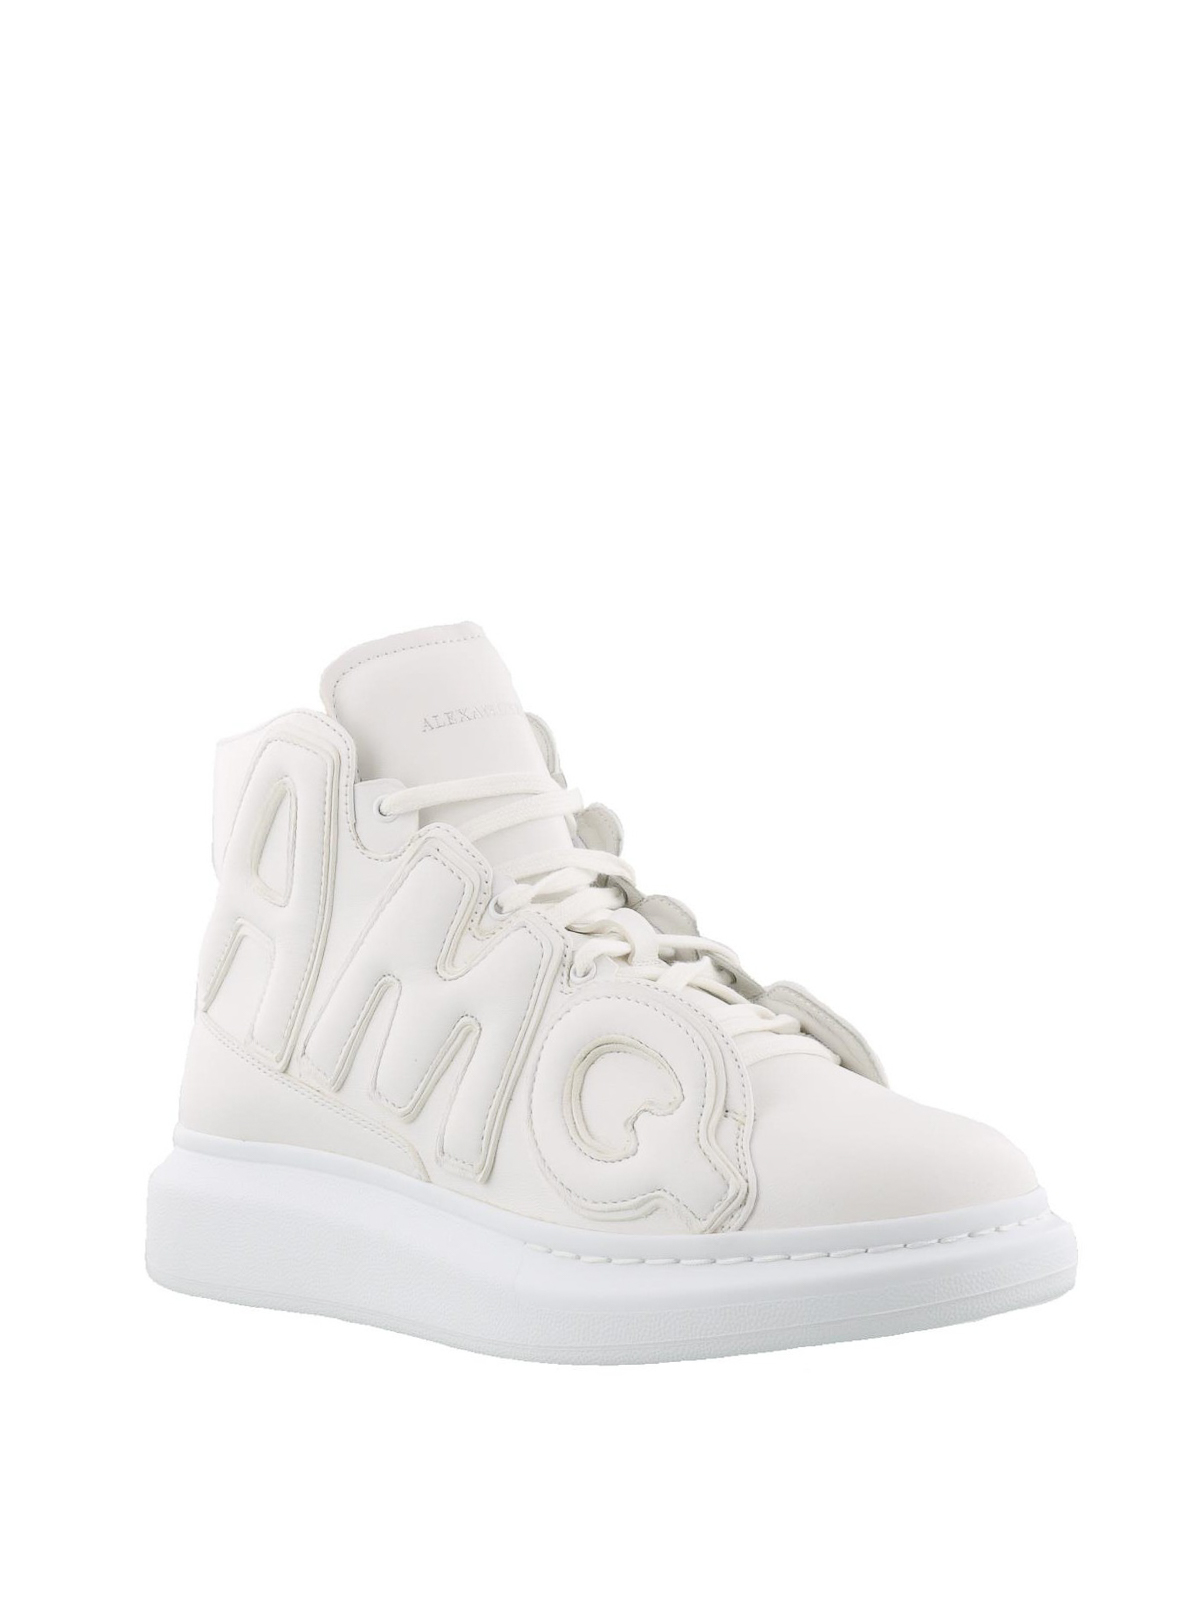 Oversize white nappa high sneakers by Alexander Mcqueen ...